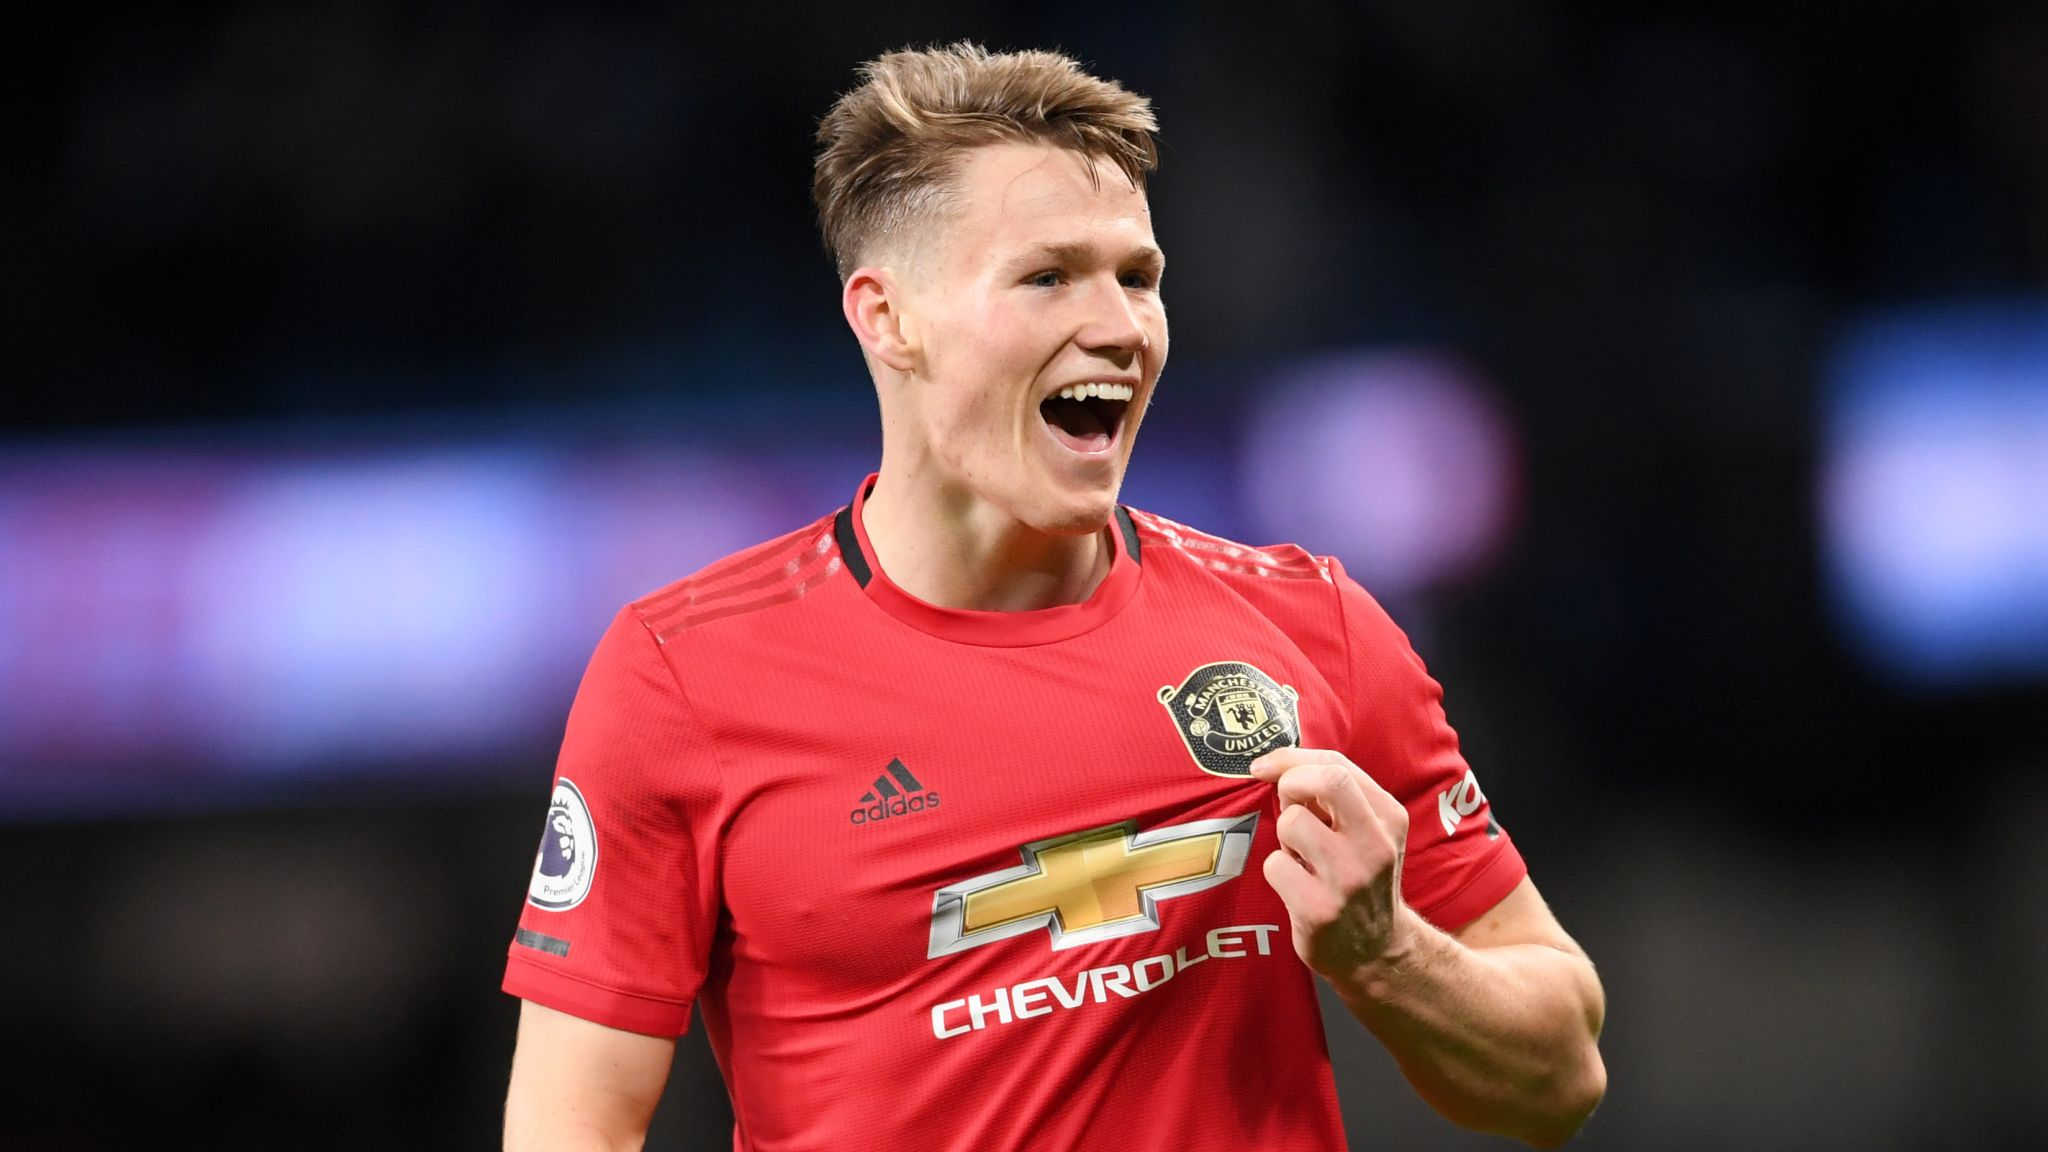 netflix-africa-promotional-video-us-coronavirus-cases-surge-scott-mctominay-signs-new-deal-latest-news-global-world-stories-tuesday-june-2020-style-rave